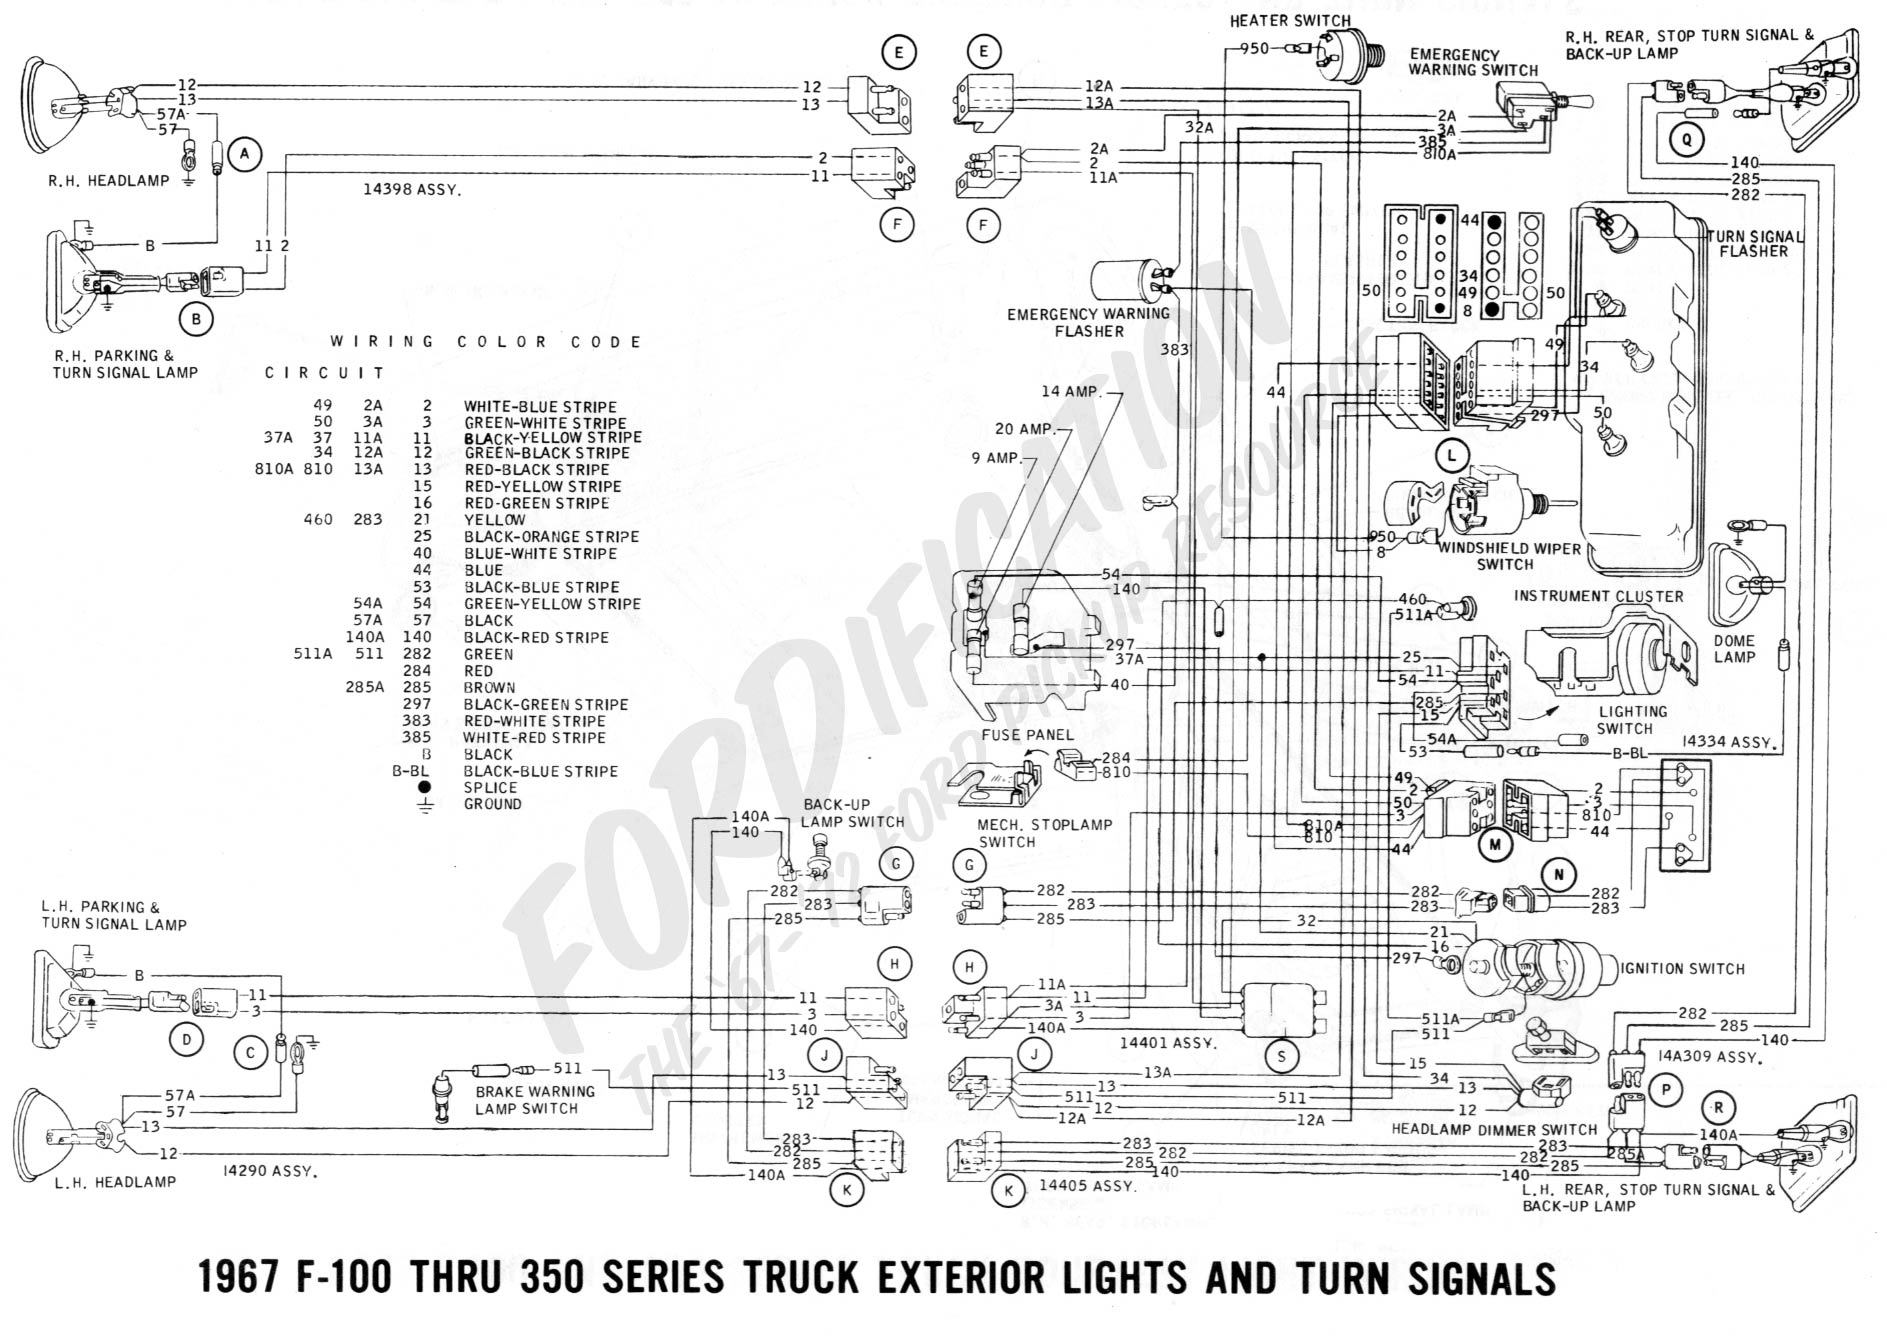 80 1967_exterior_lights_and_turn_signals_page_2_1db6c529c4c9567560e56d6320f993290ba5b803 66 mustang wiring diagram 1966 mustang dash wiring diagram 1969 mustang alternator wiring diagram at eliteediting.co